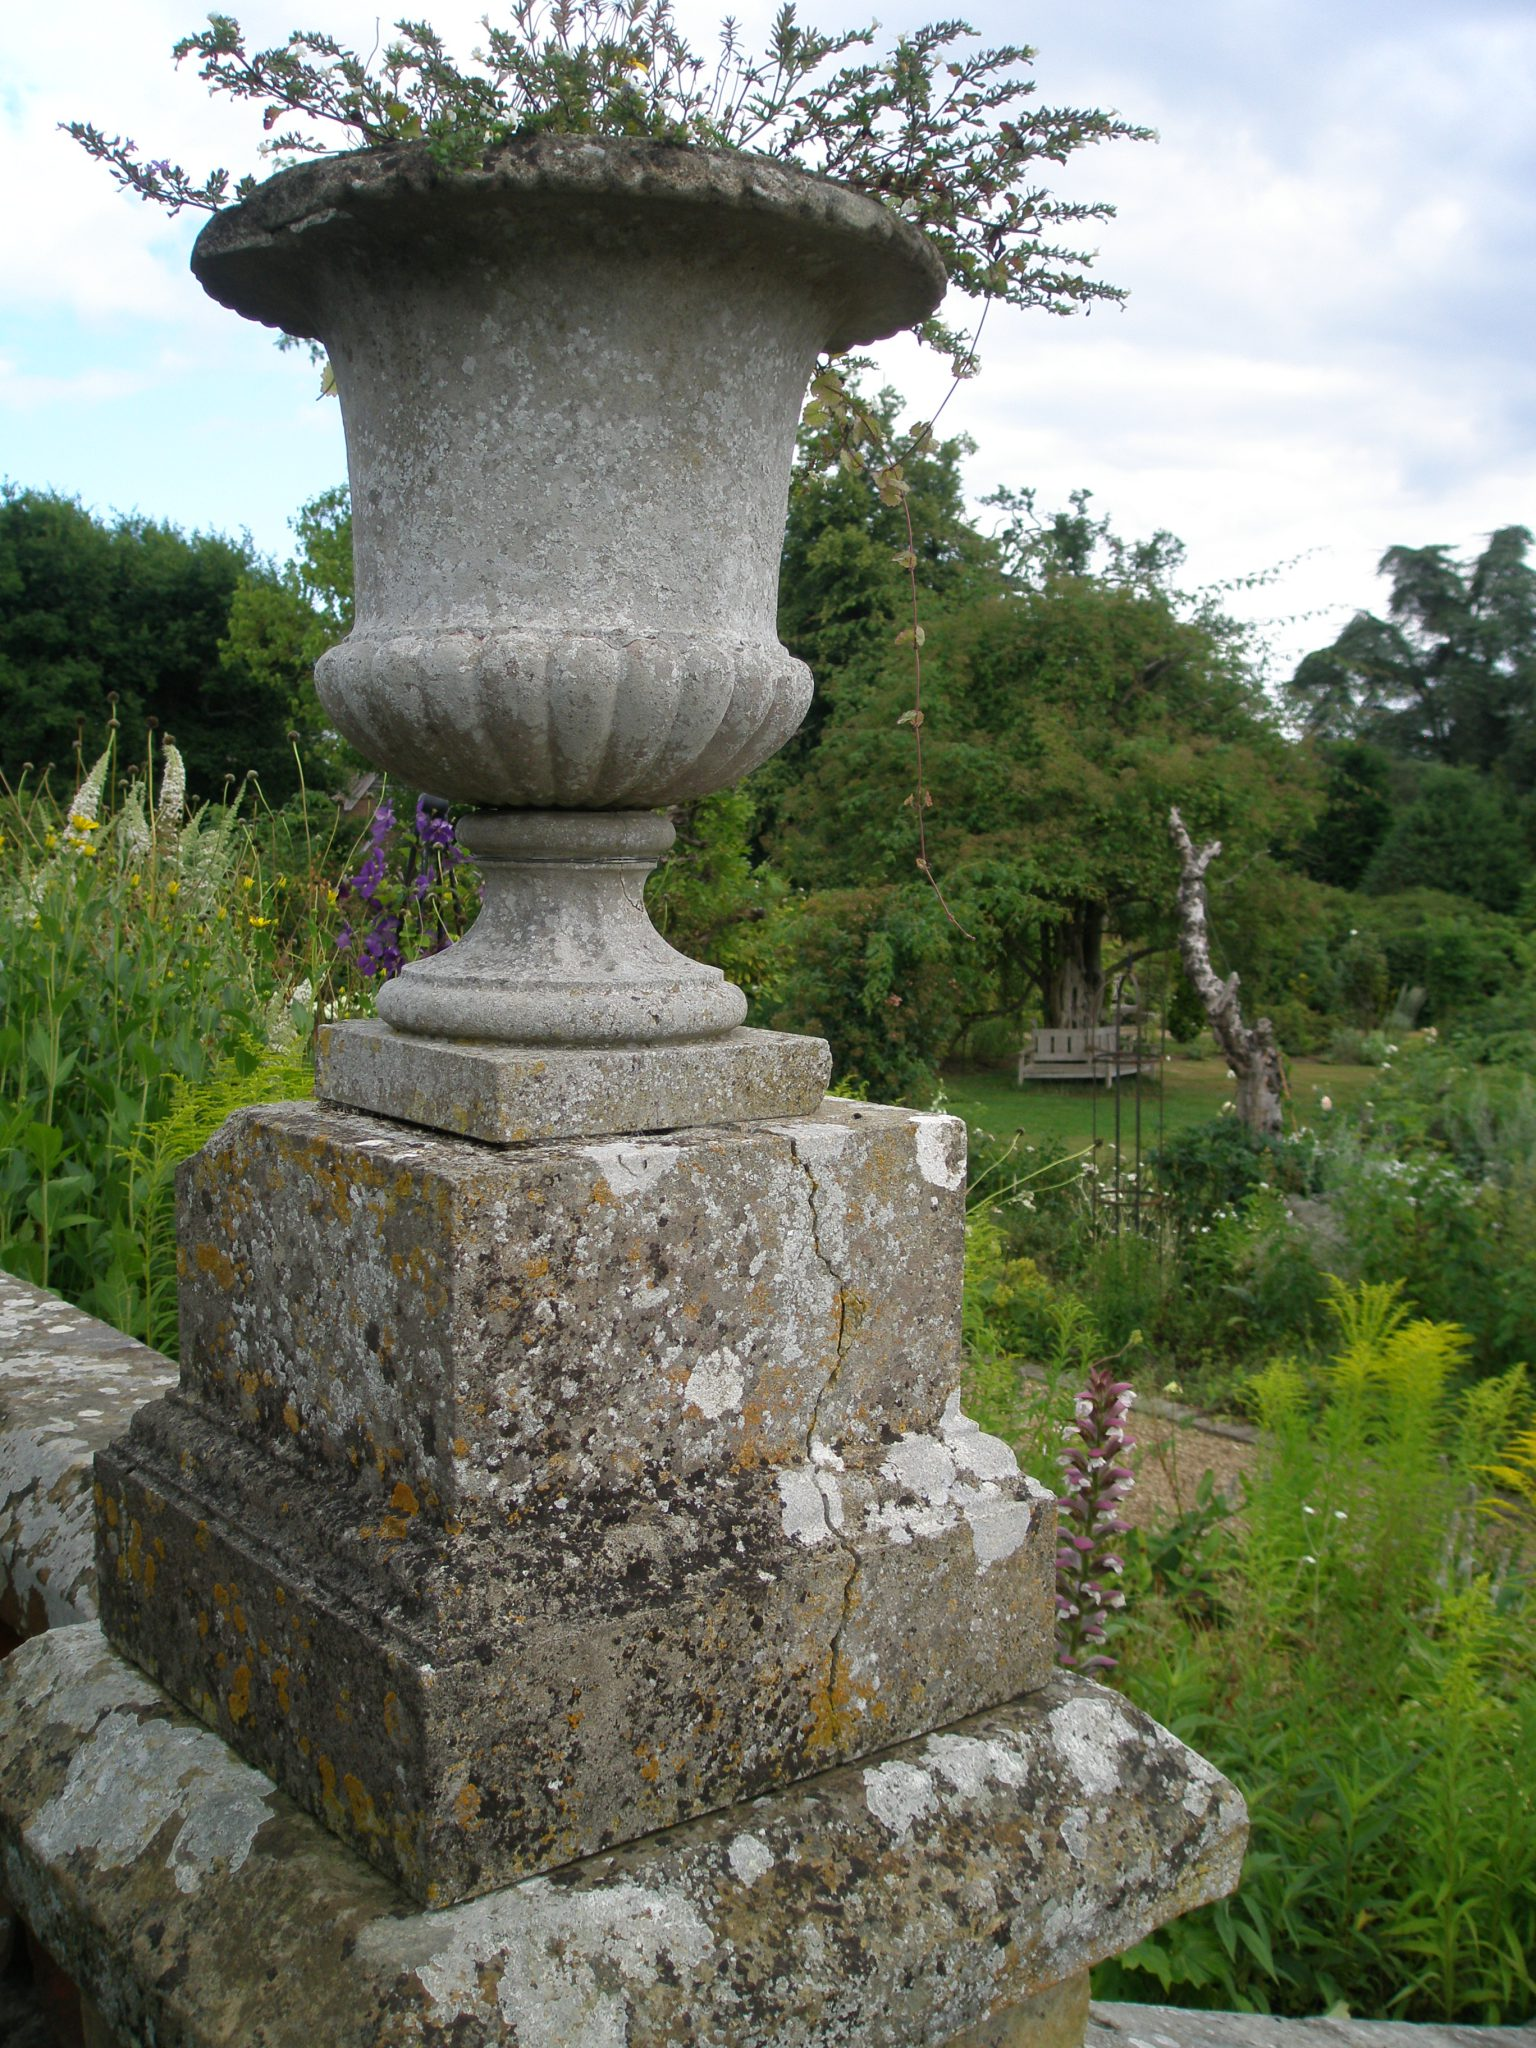 Urn on the balustrade of the White Rose Garden